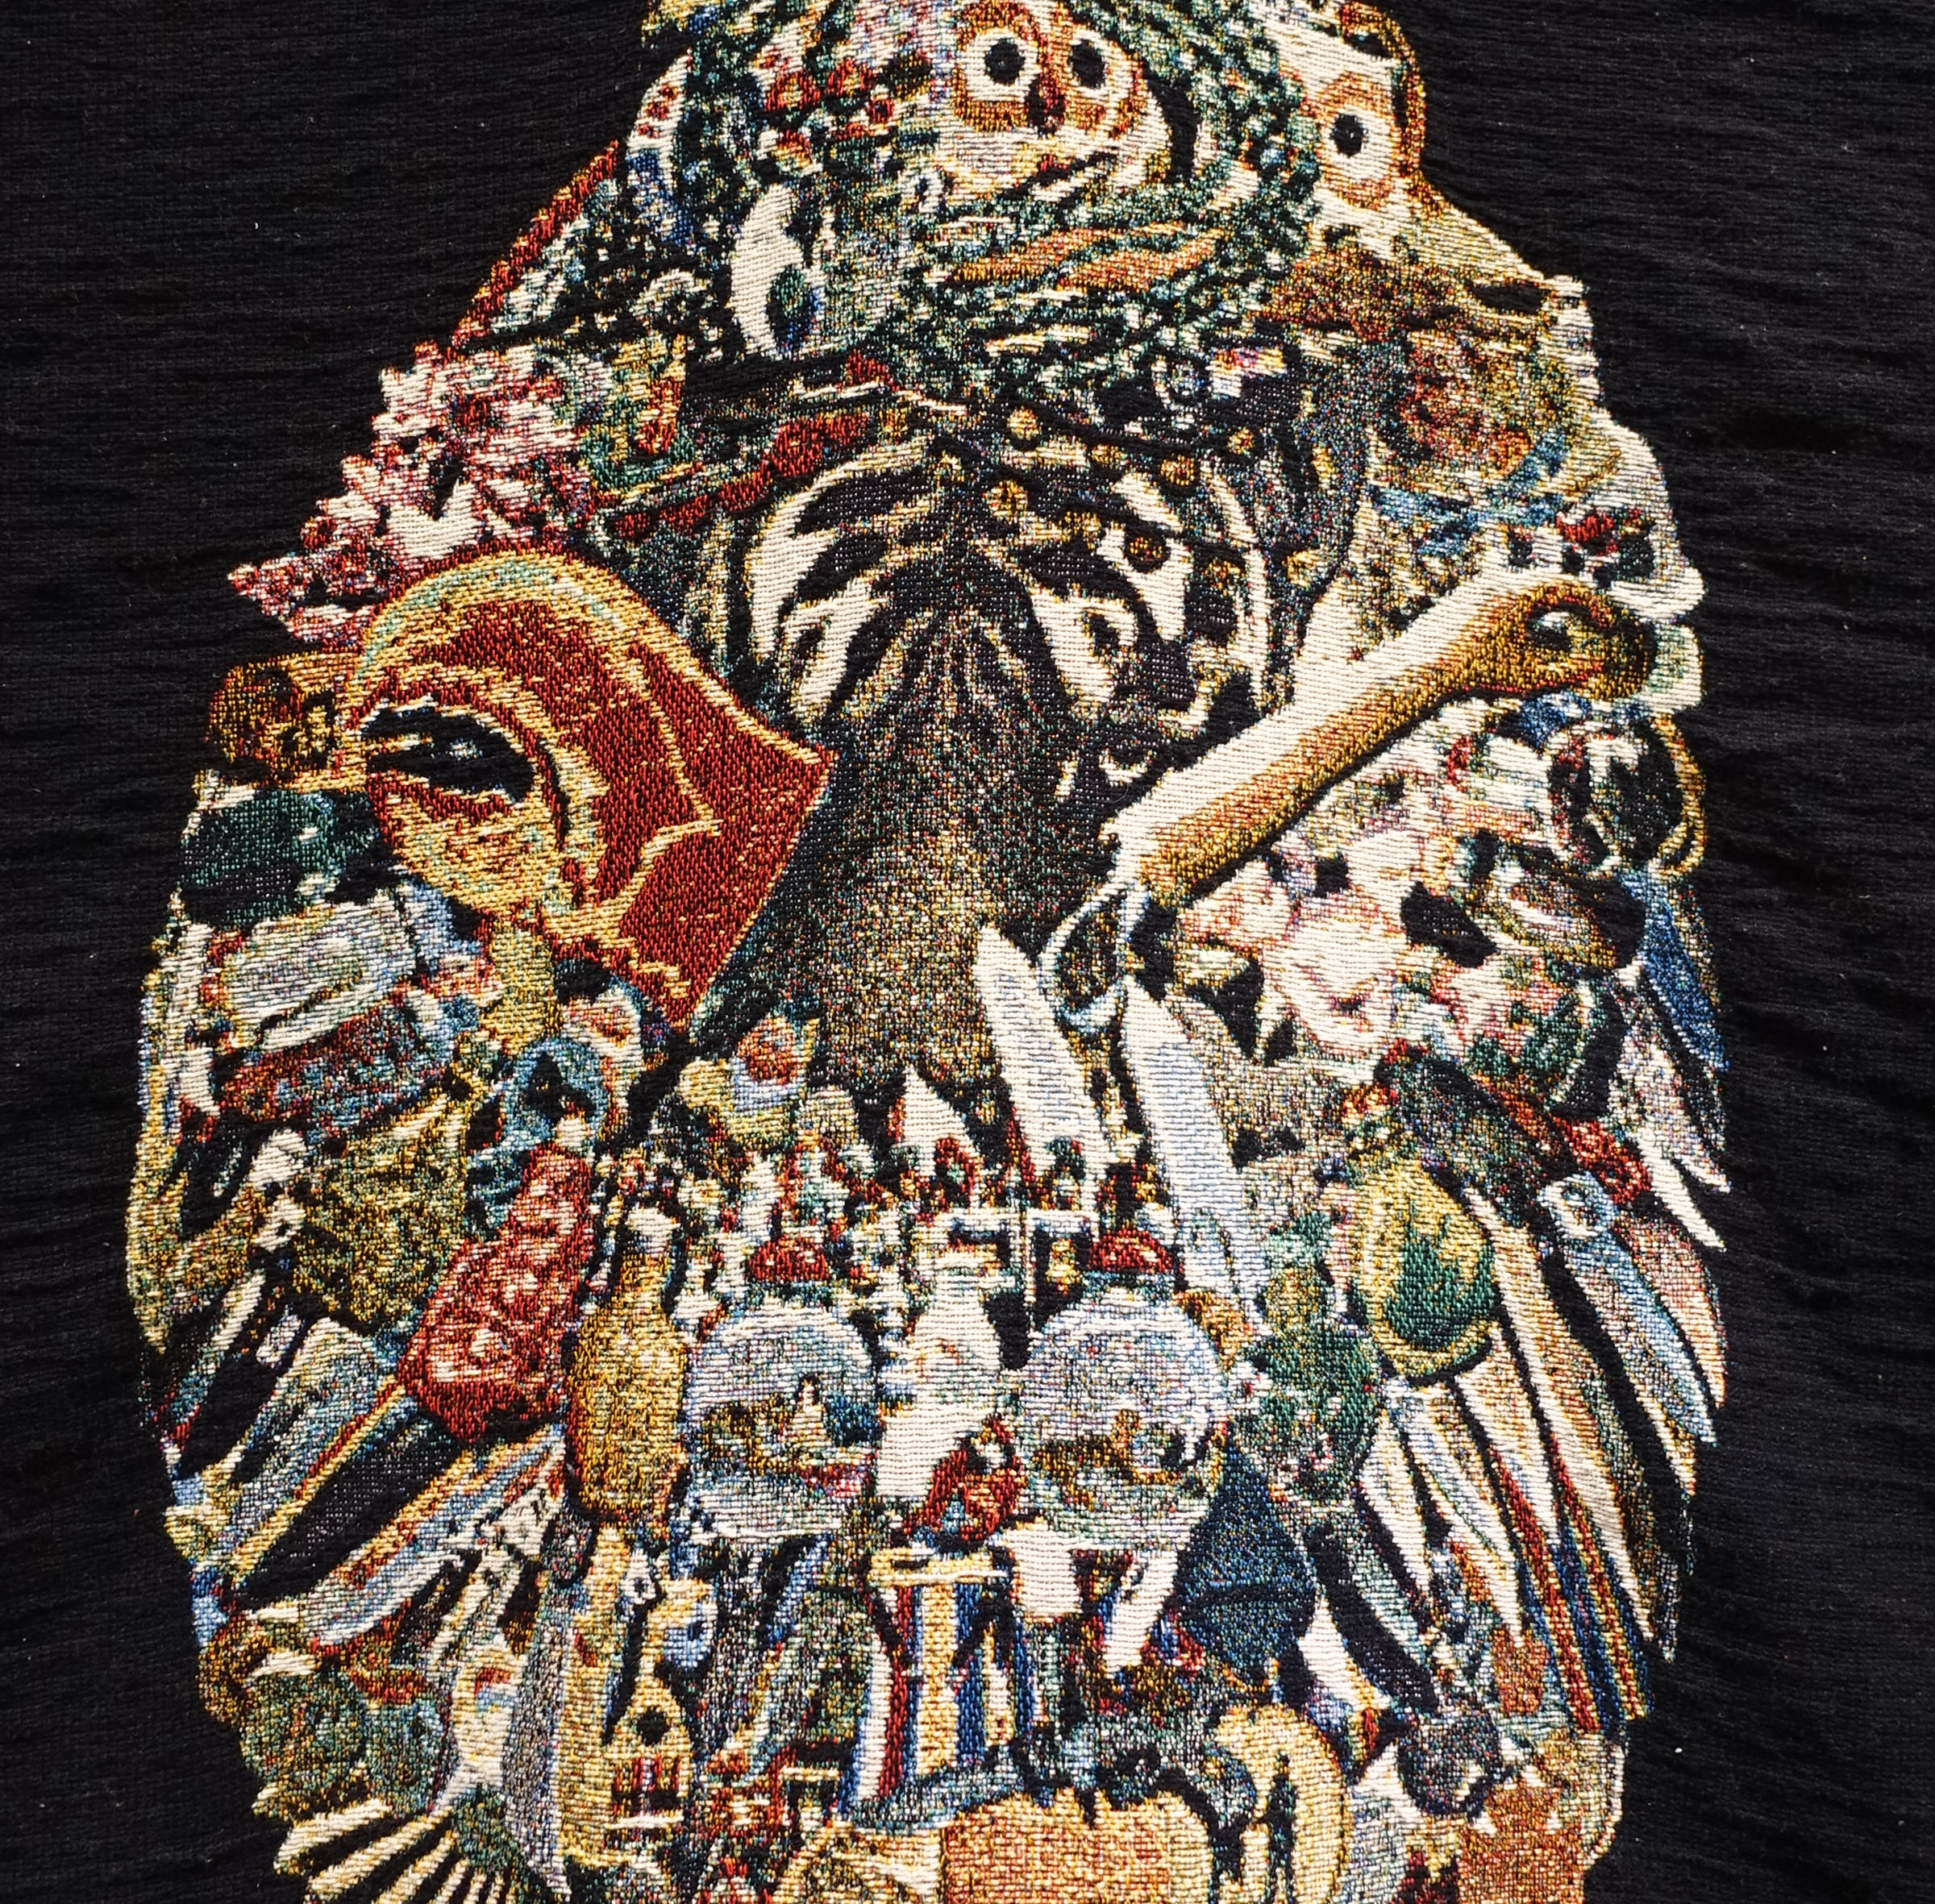 eBay Sarcophagus, or, I love you this much $14,911.18 : detail   | woven digital tapestry, papier mâché, gouache, acrylic paint, clay|24INx60INx80IN